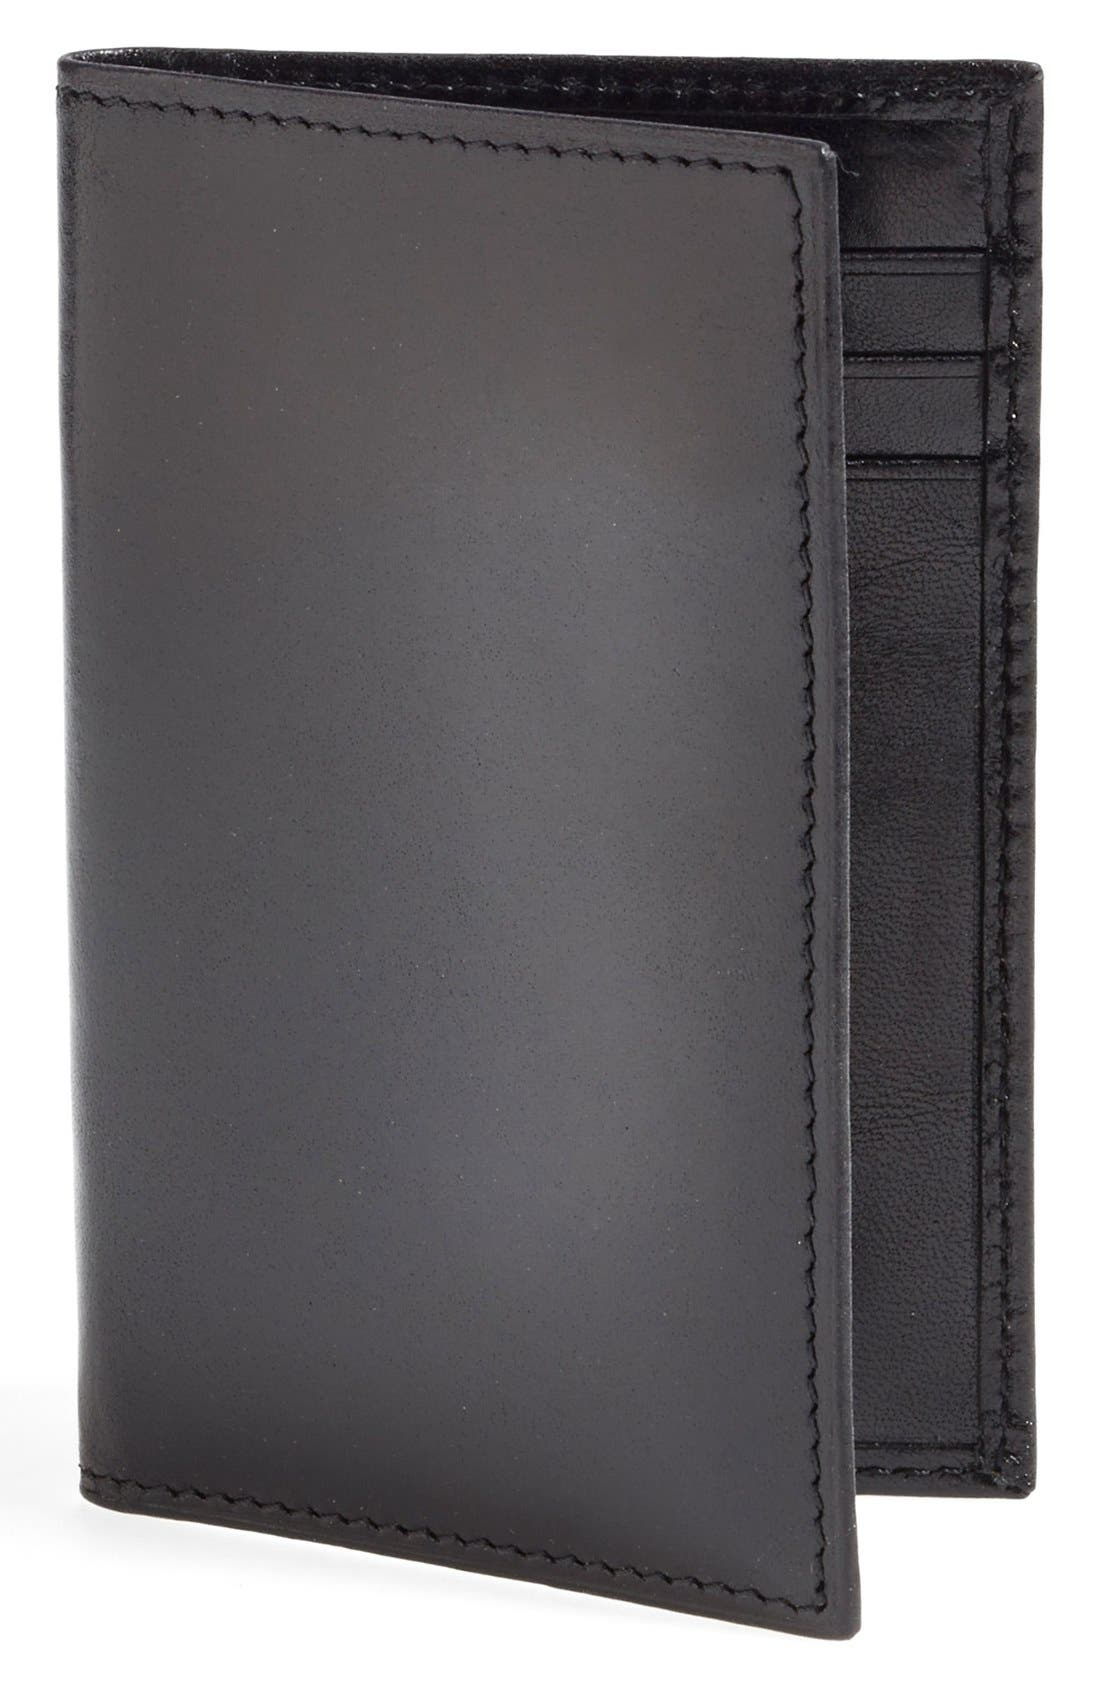 Alternate Image 1 Selected - Bosca 'Old Leather' Card Case